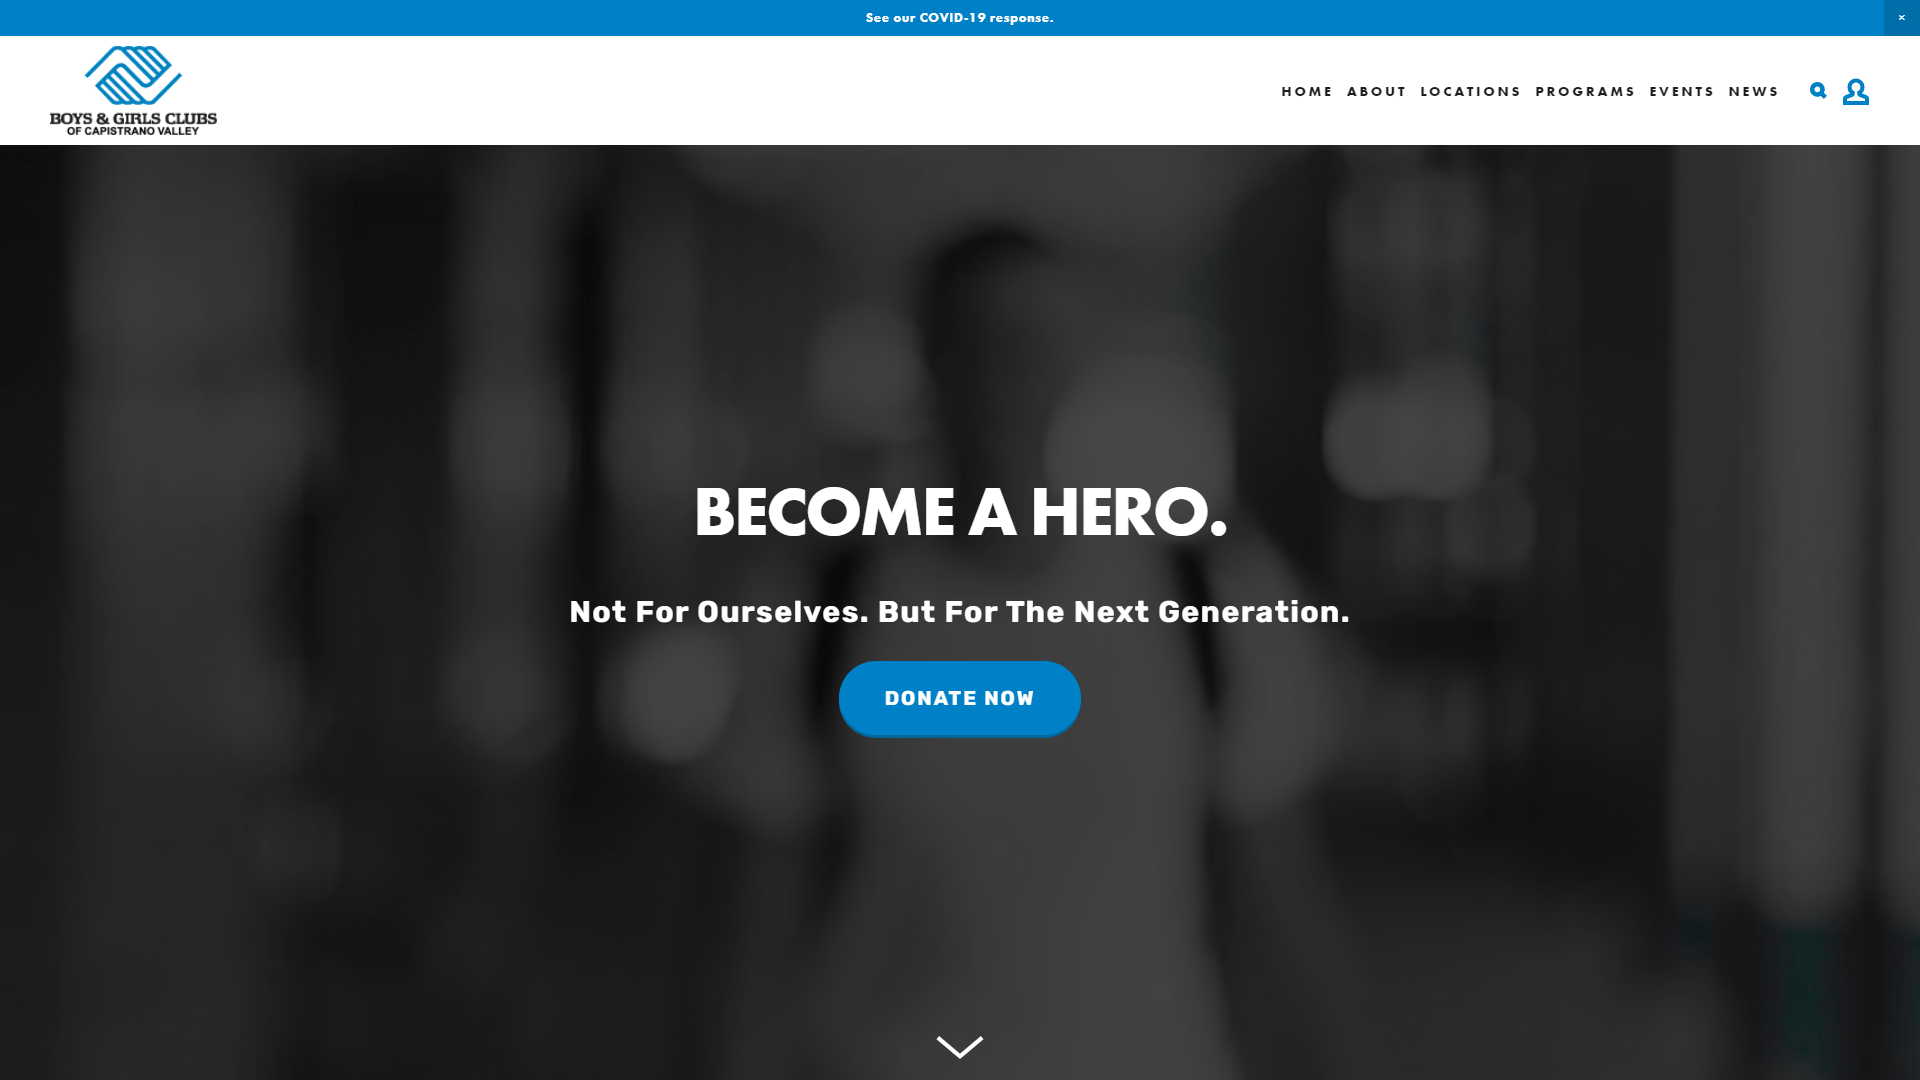 Heroes — Boys & Girls Clubs of Capistrano Valley